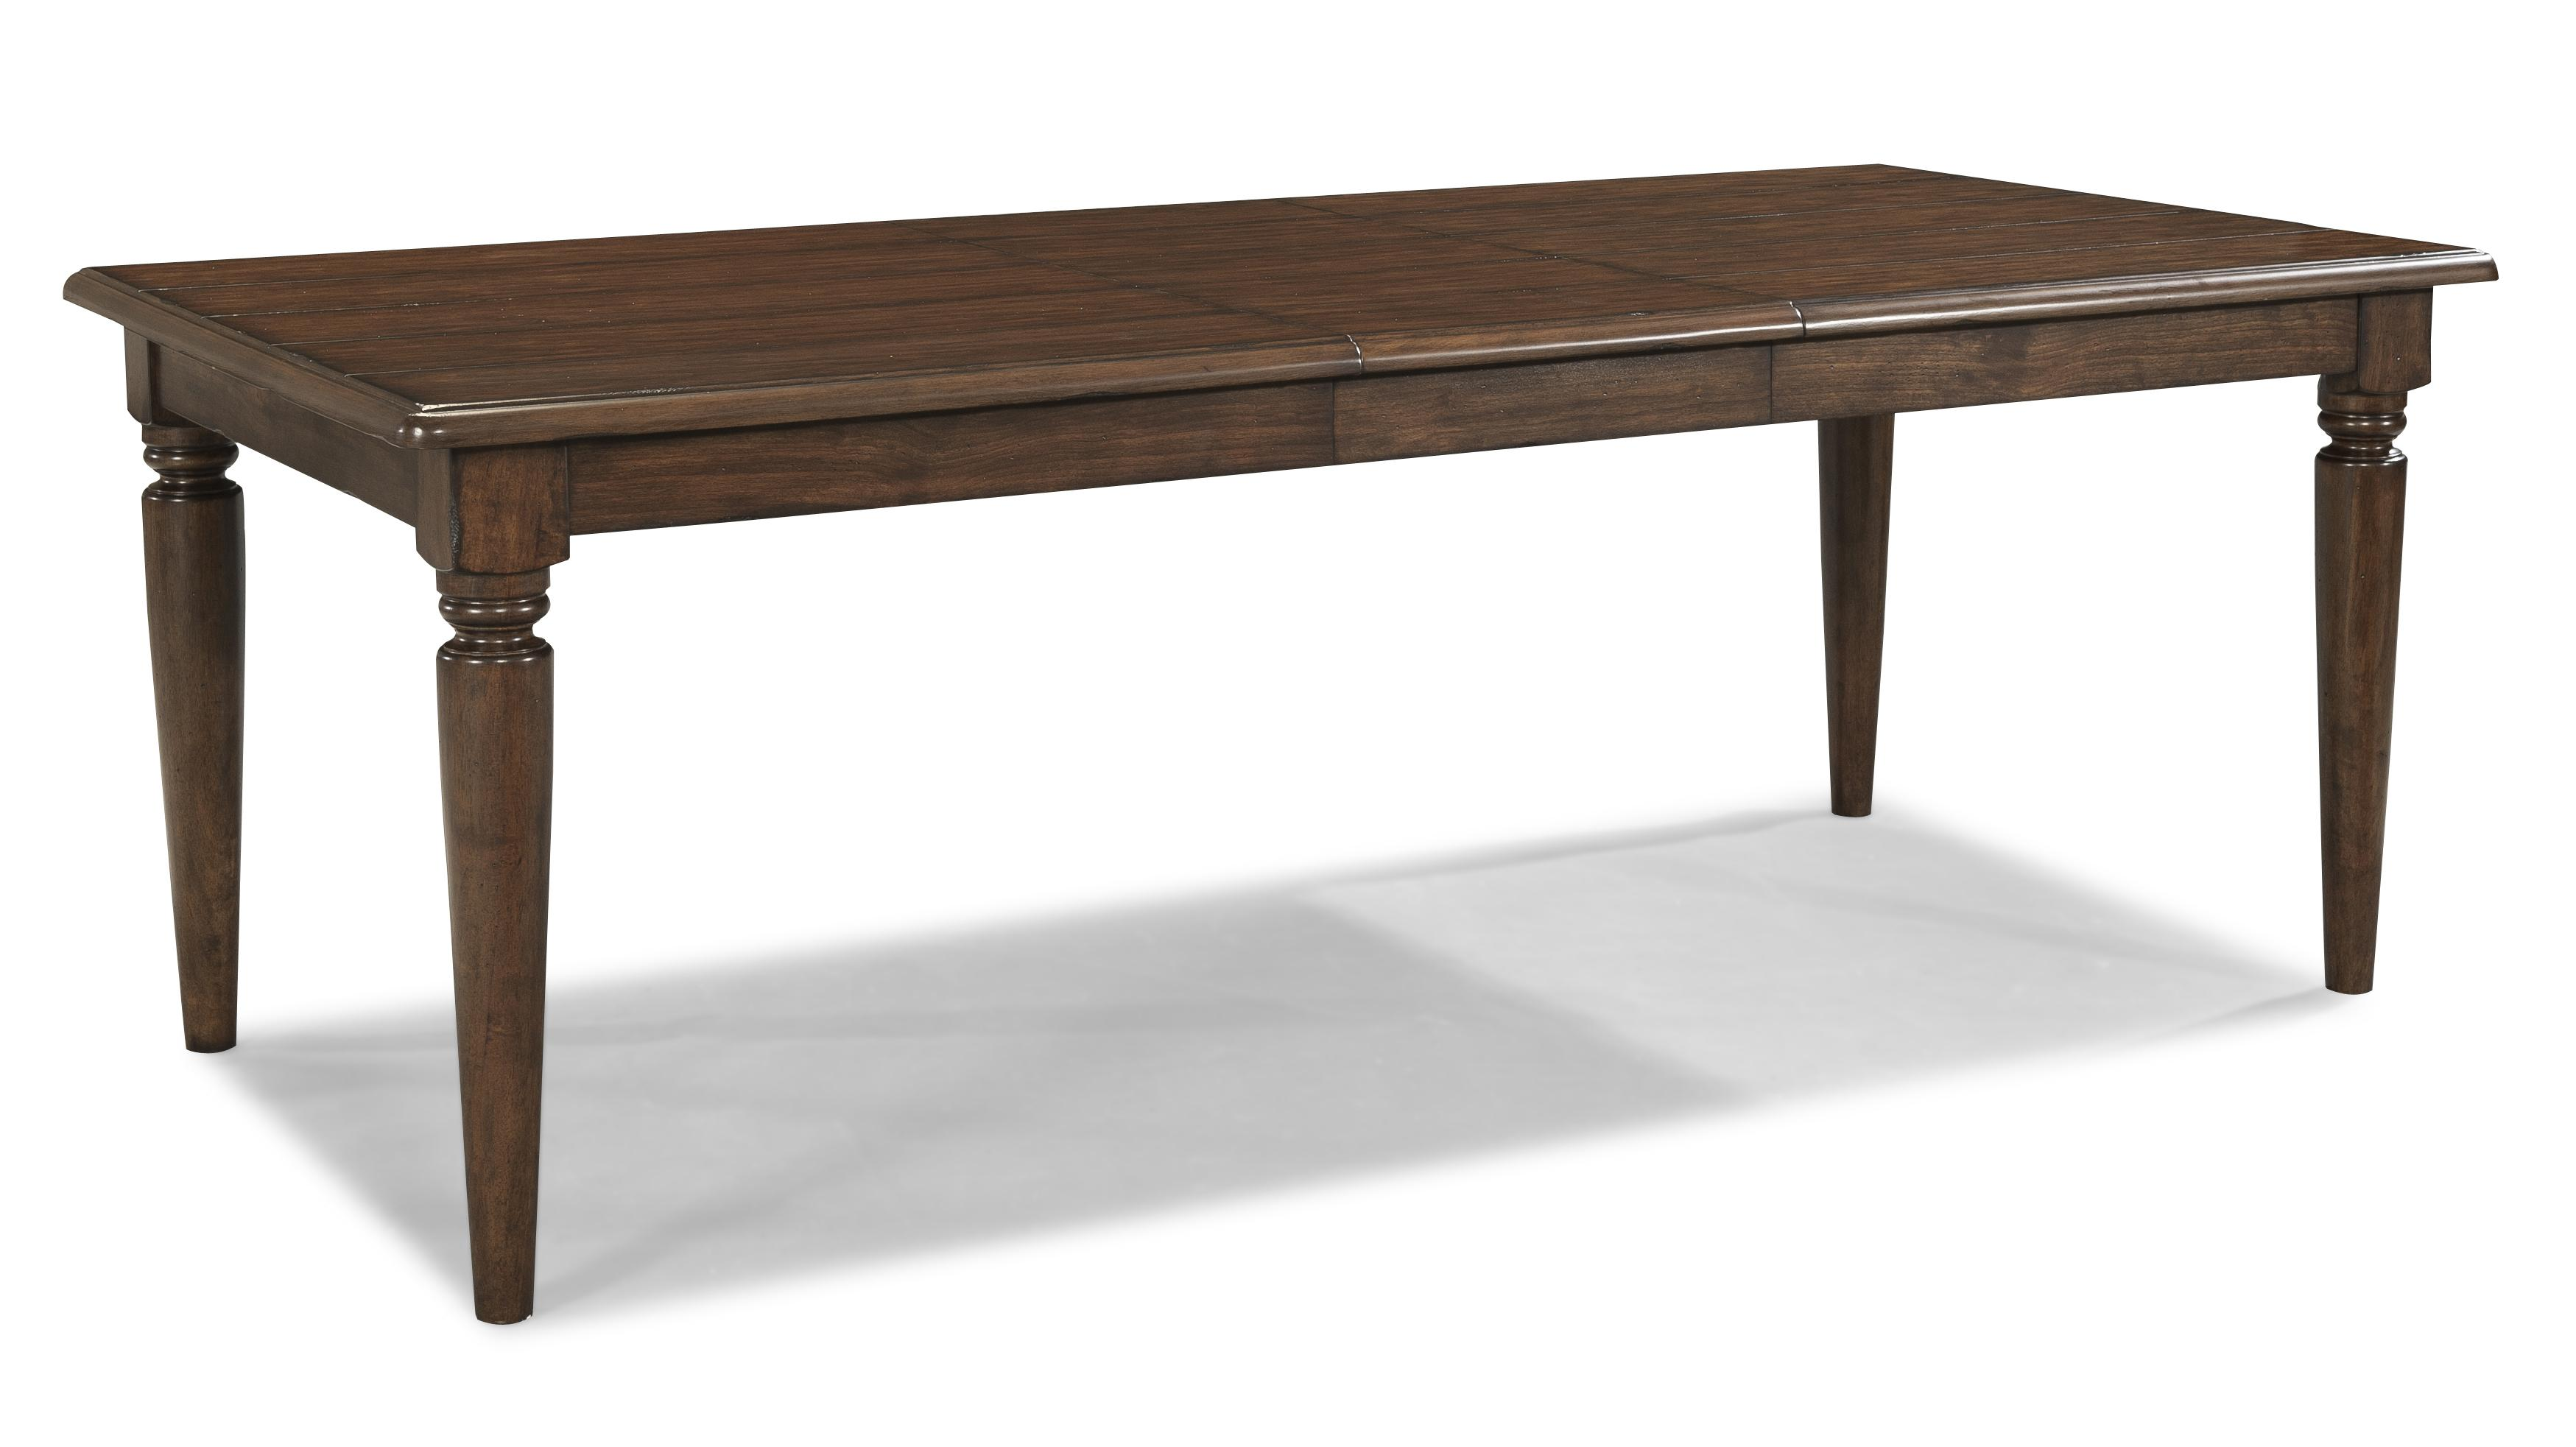 Easton Collection Blue Ridge Rectangular Table with Leaf - Item Number: 426-084 DRT